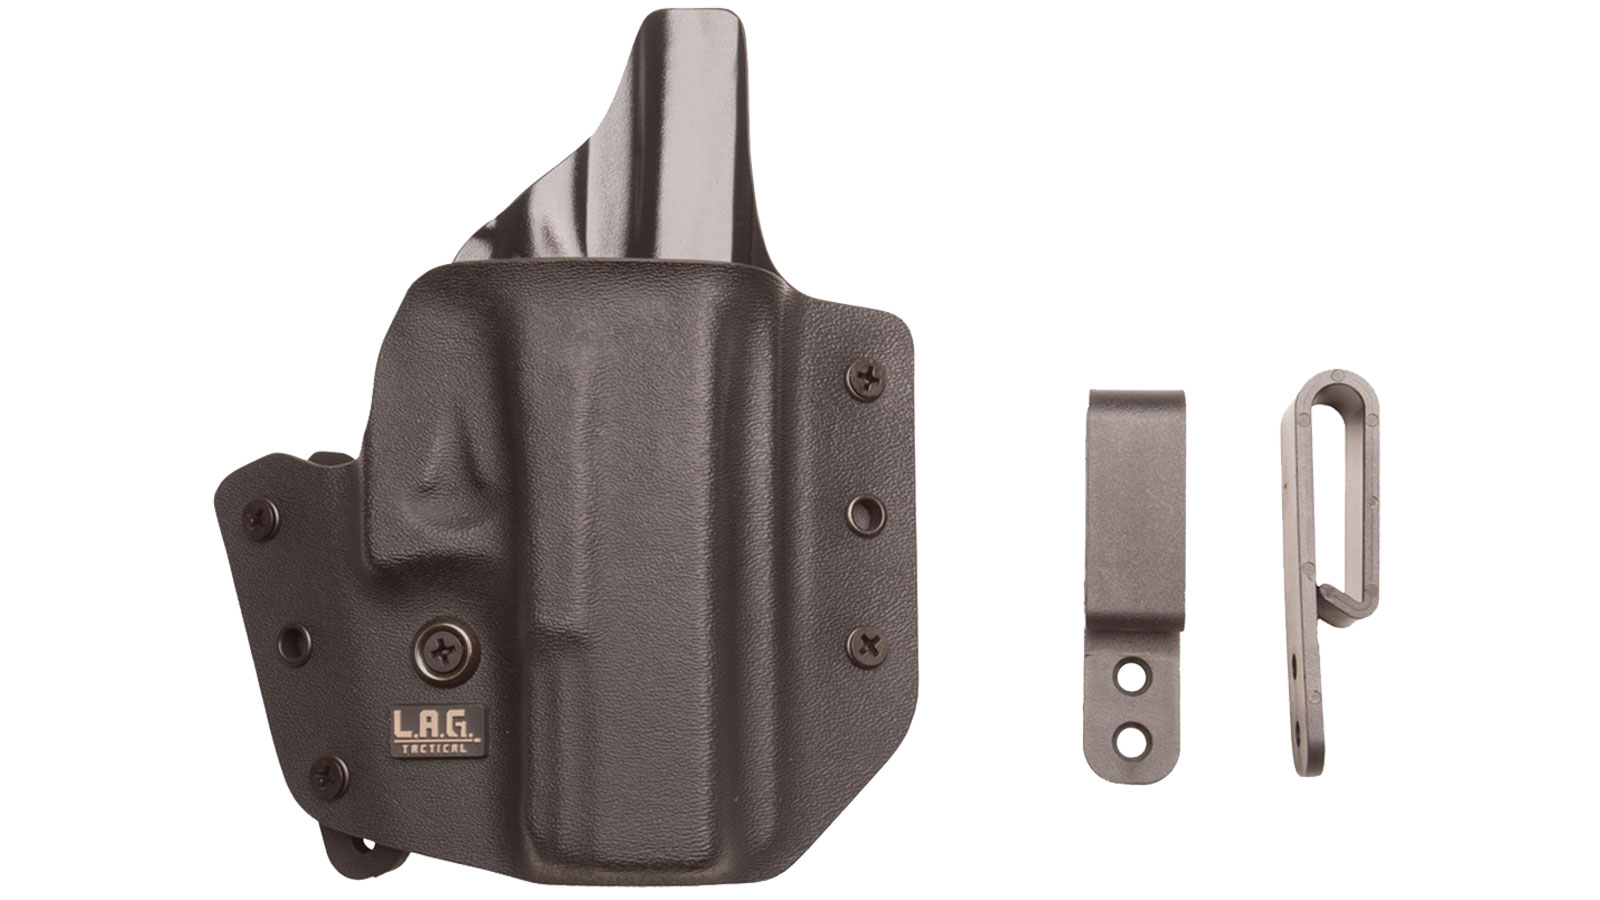 L.A.G. Tactical The DEFENDER for Sig P250|P320 Compact